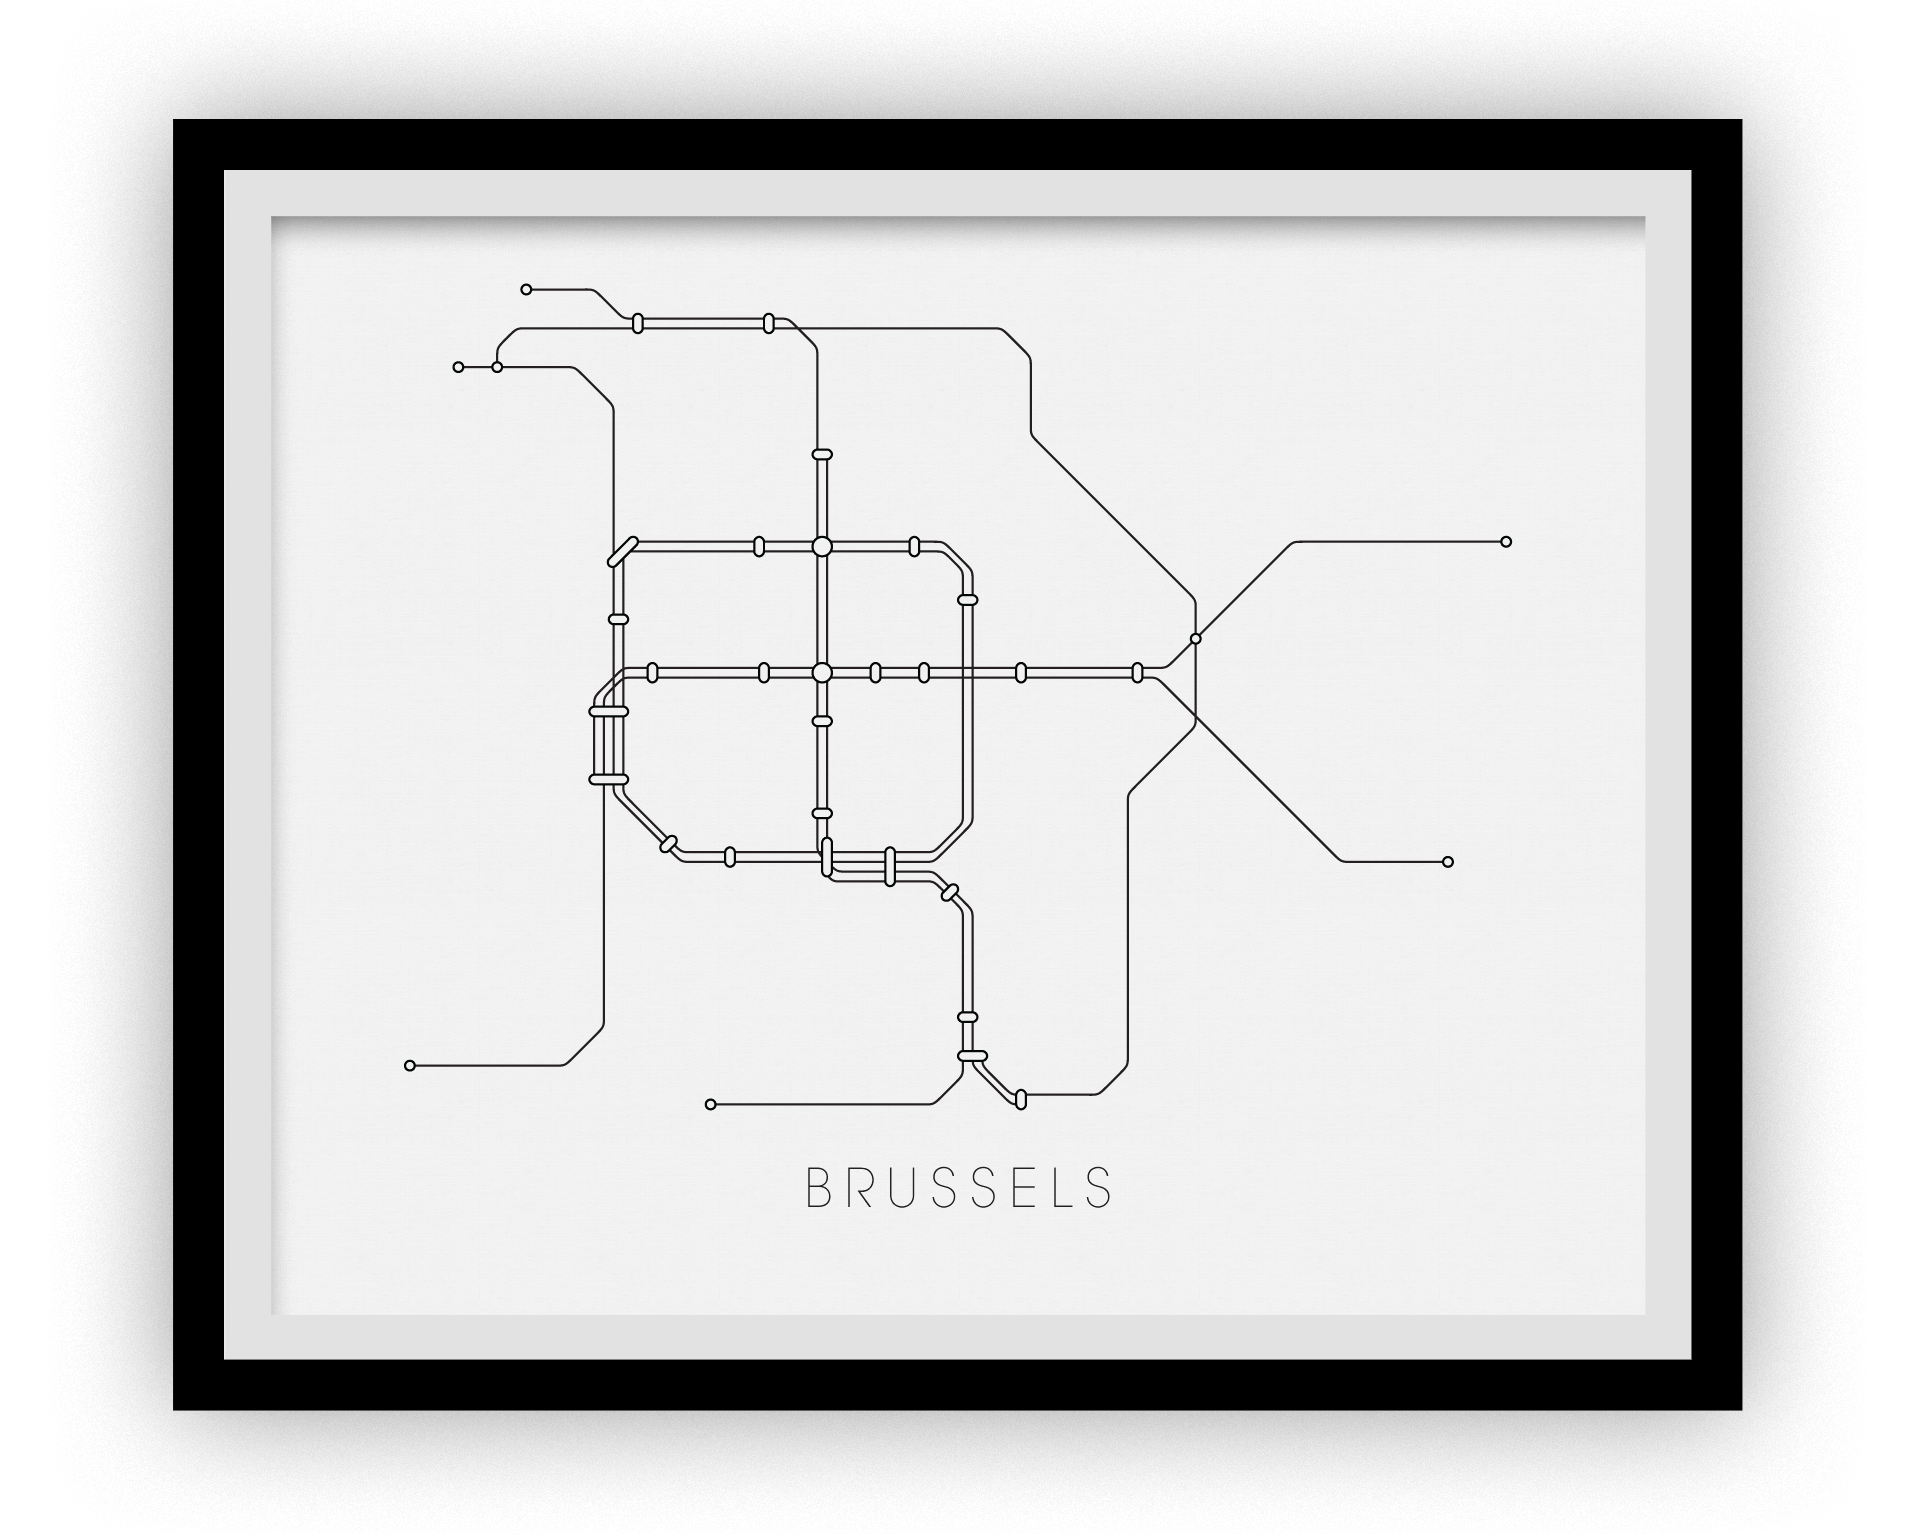 Brussels Subway Map Print Brussels Metro Map Poster Ilikemaps